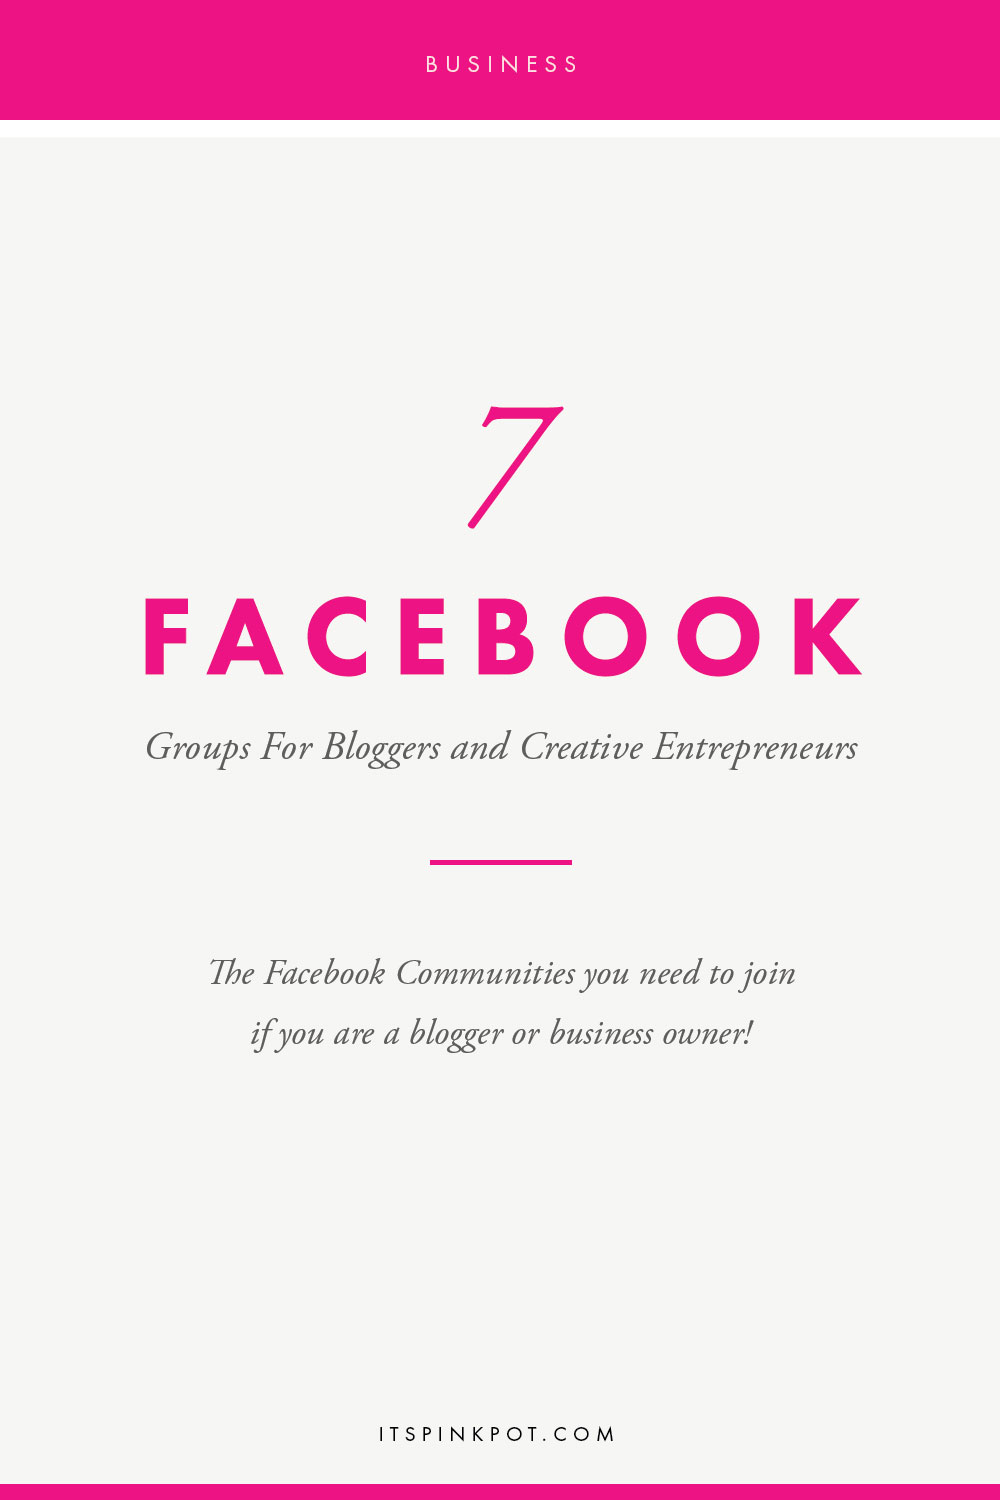 I love how spontaneous, interactive and helpful Facebook groups can be, not to forget how they encourage networking in a very authentic way to grow your business! If you are a blogger or creative entrepreneur, click here to read about my top 7 Facebook groups that I am in and LOVE!